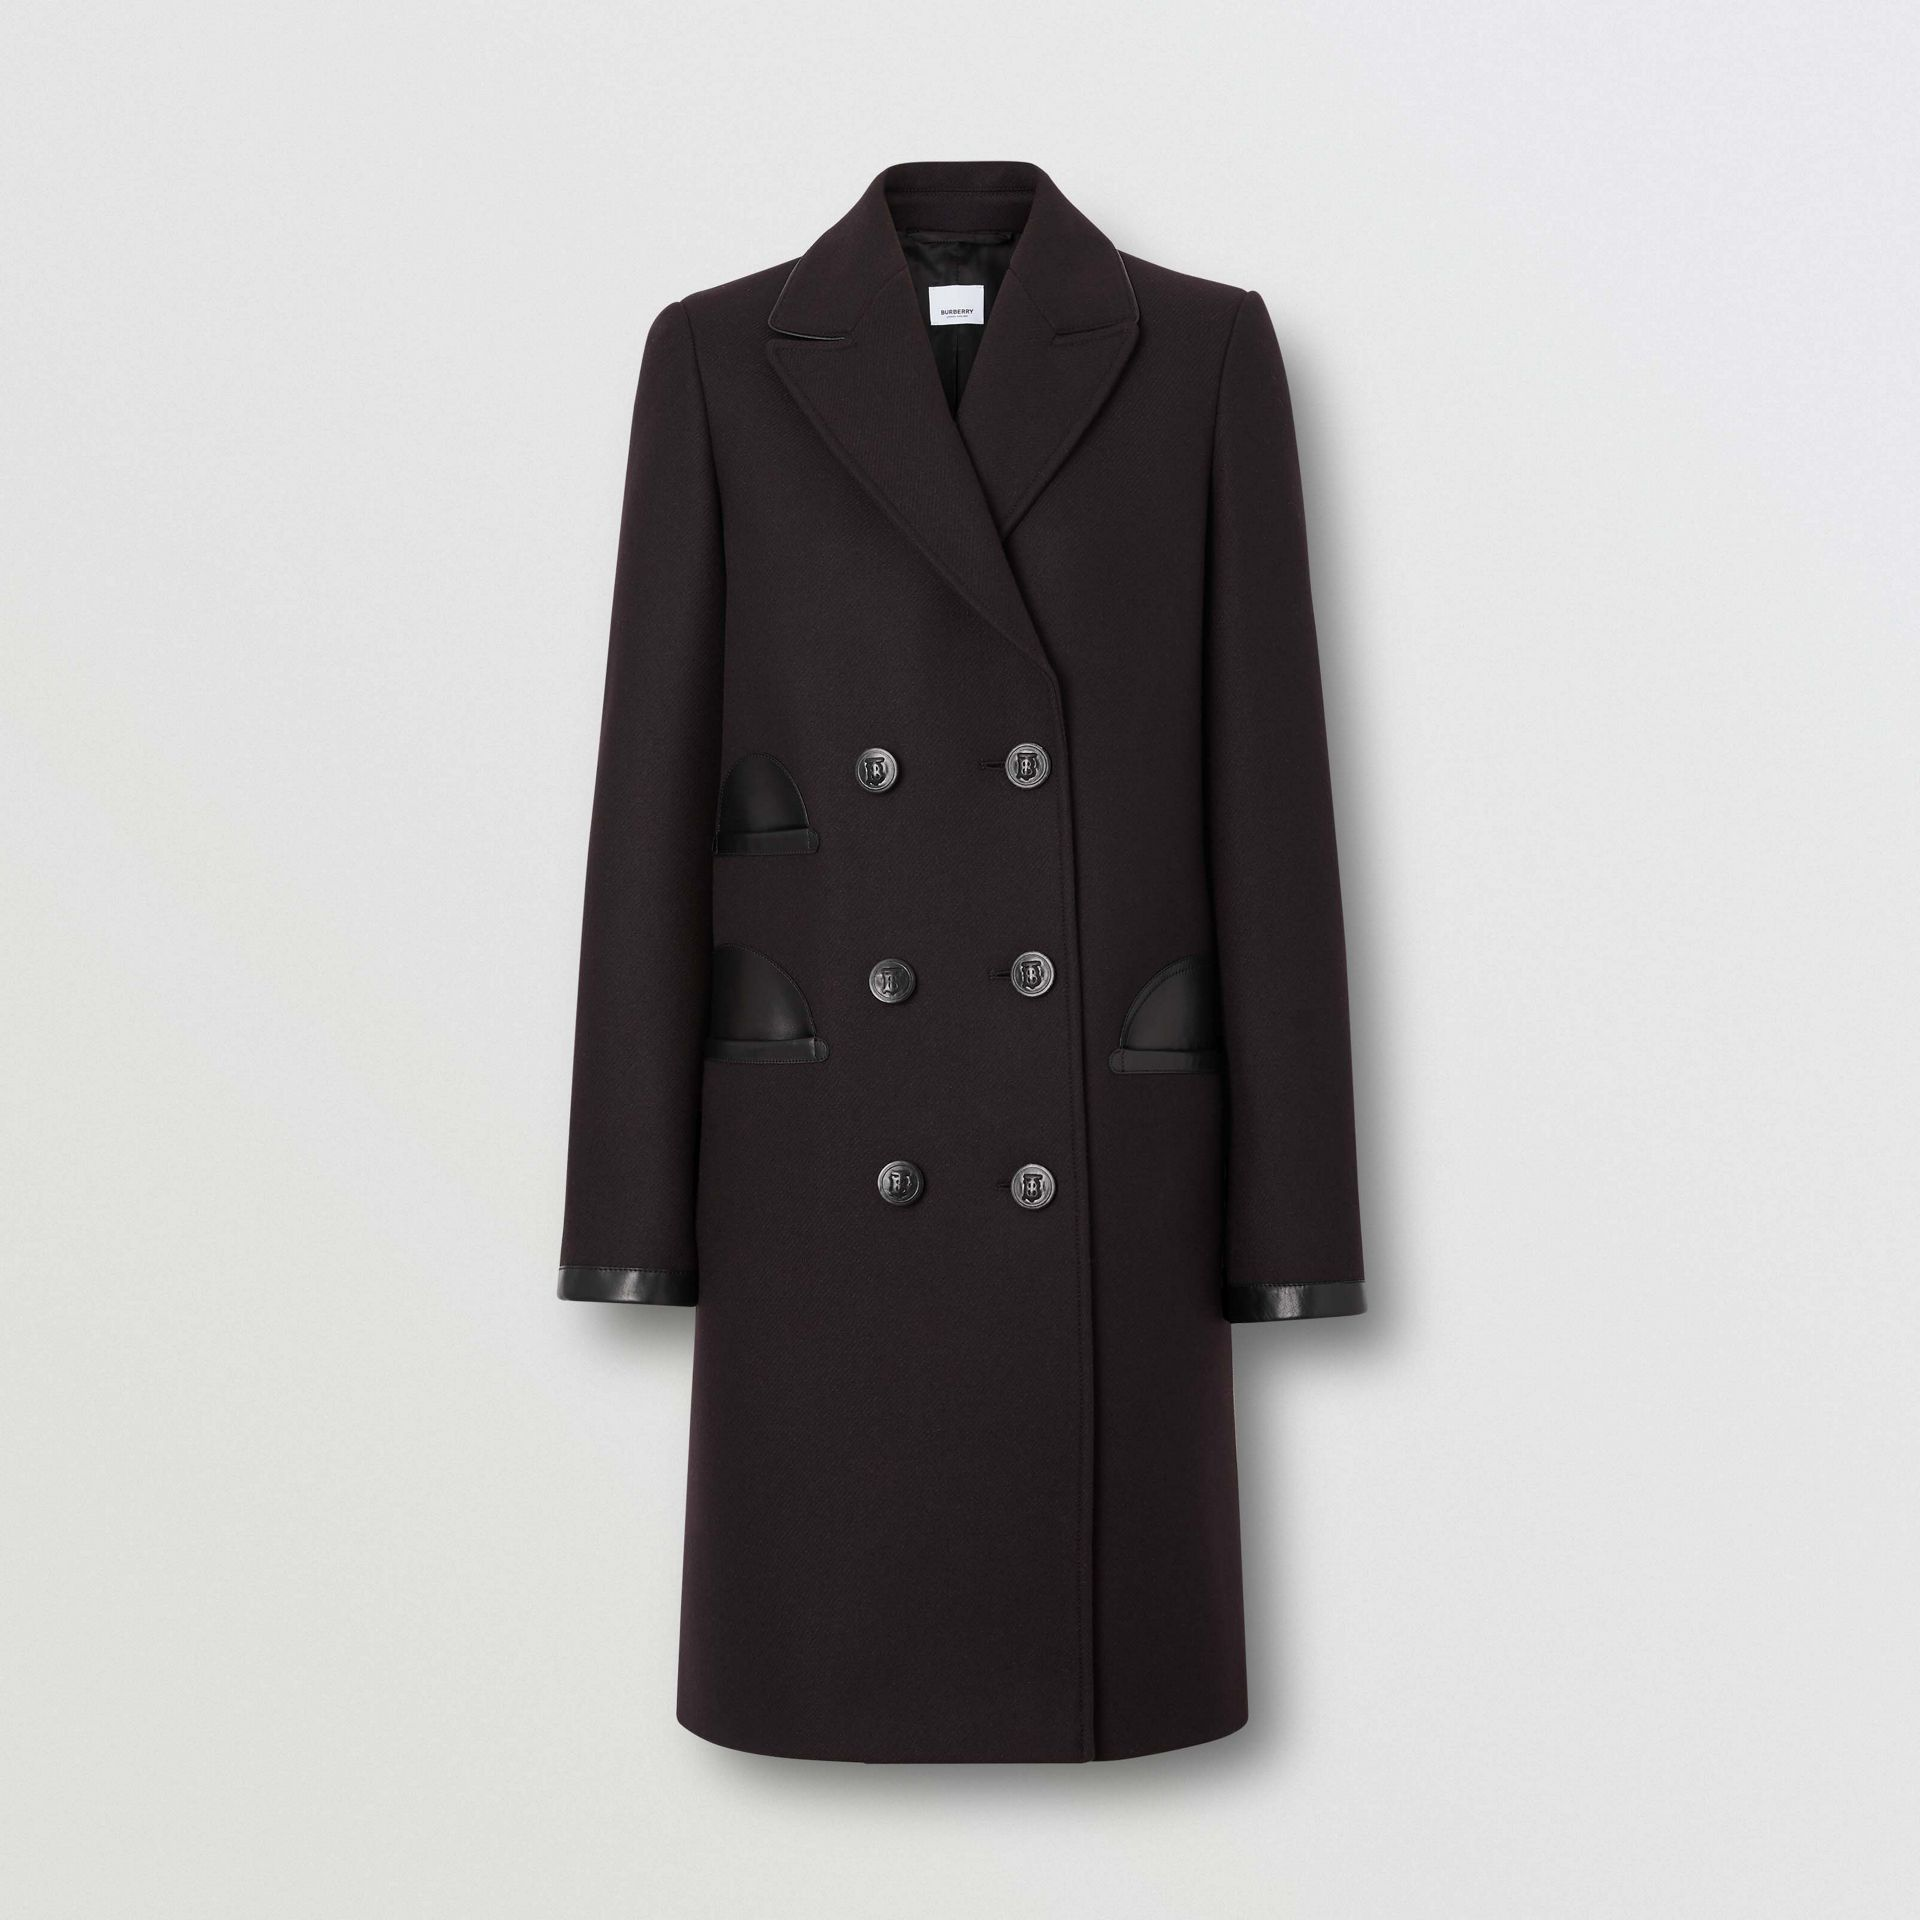 Lambskin Trim Wool Cashmere Blend Tailored Coat in Black Maroon - Women | Burberry United States - gallery image 2